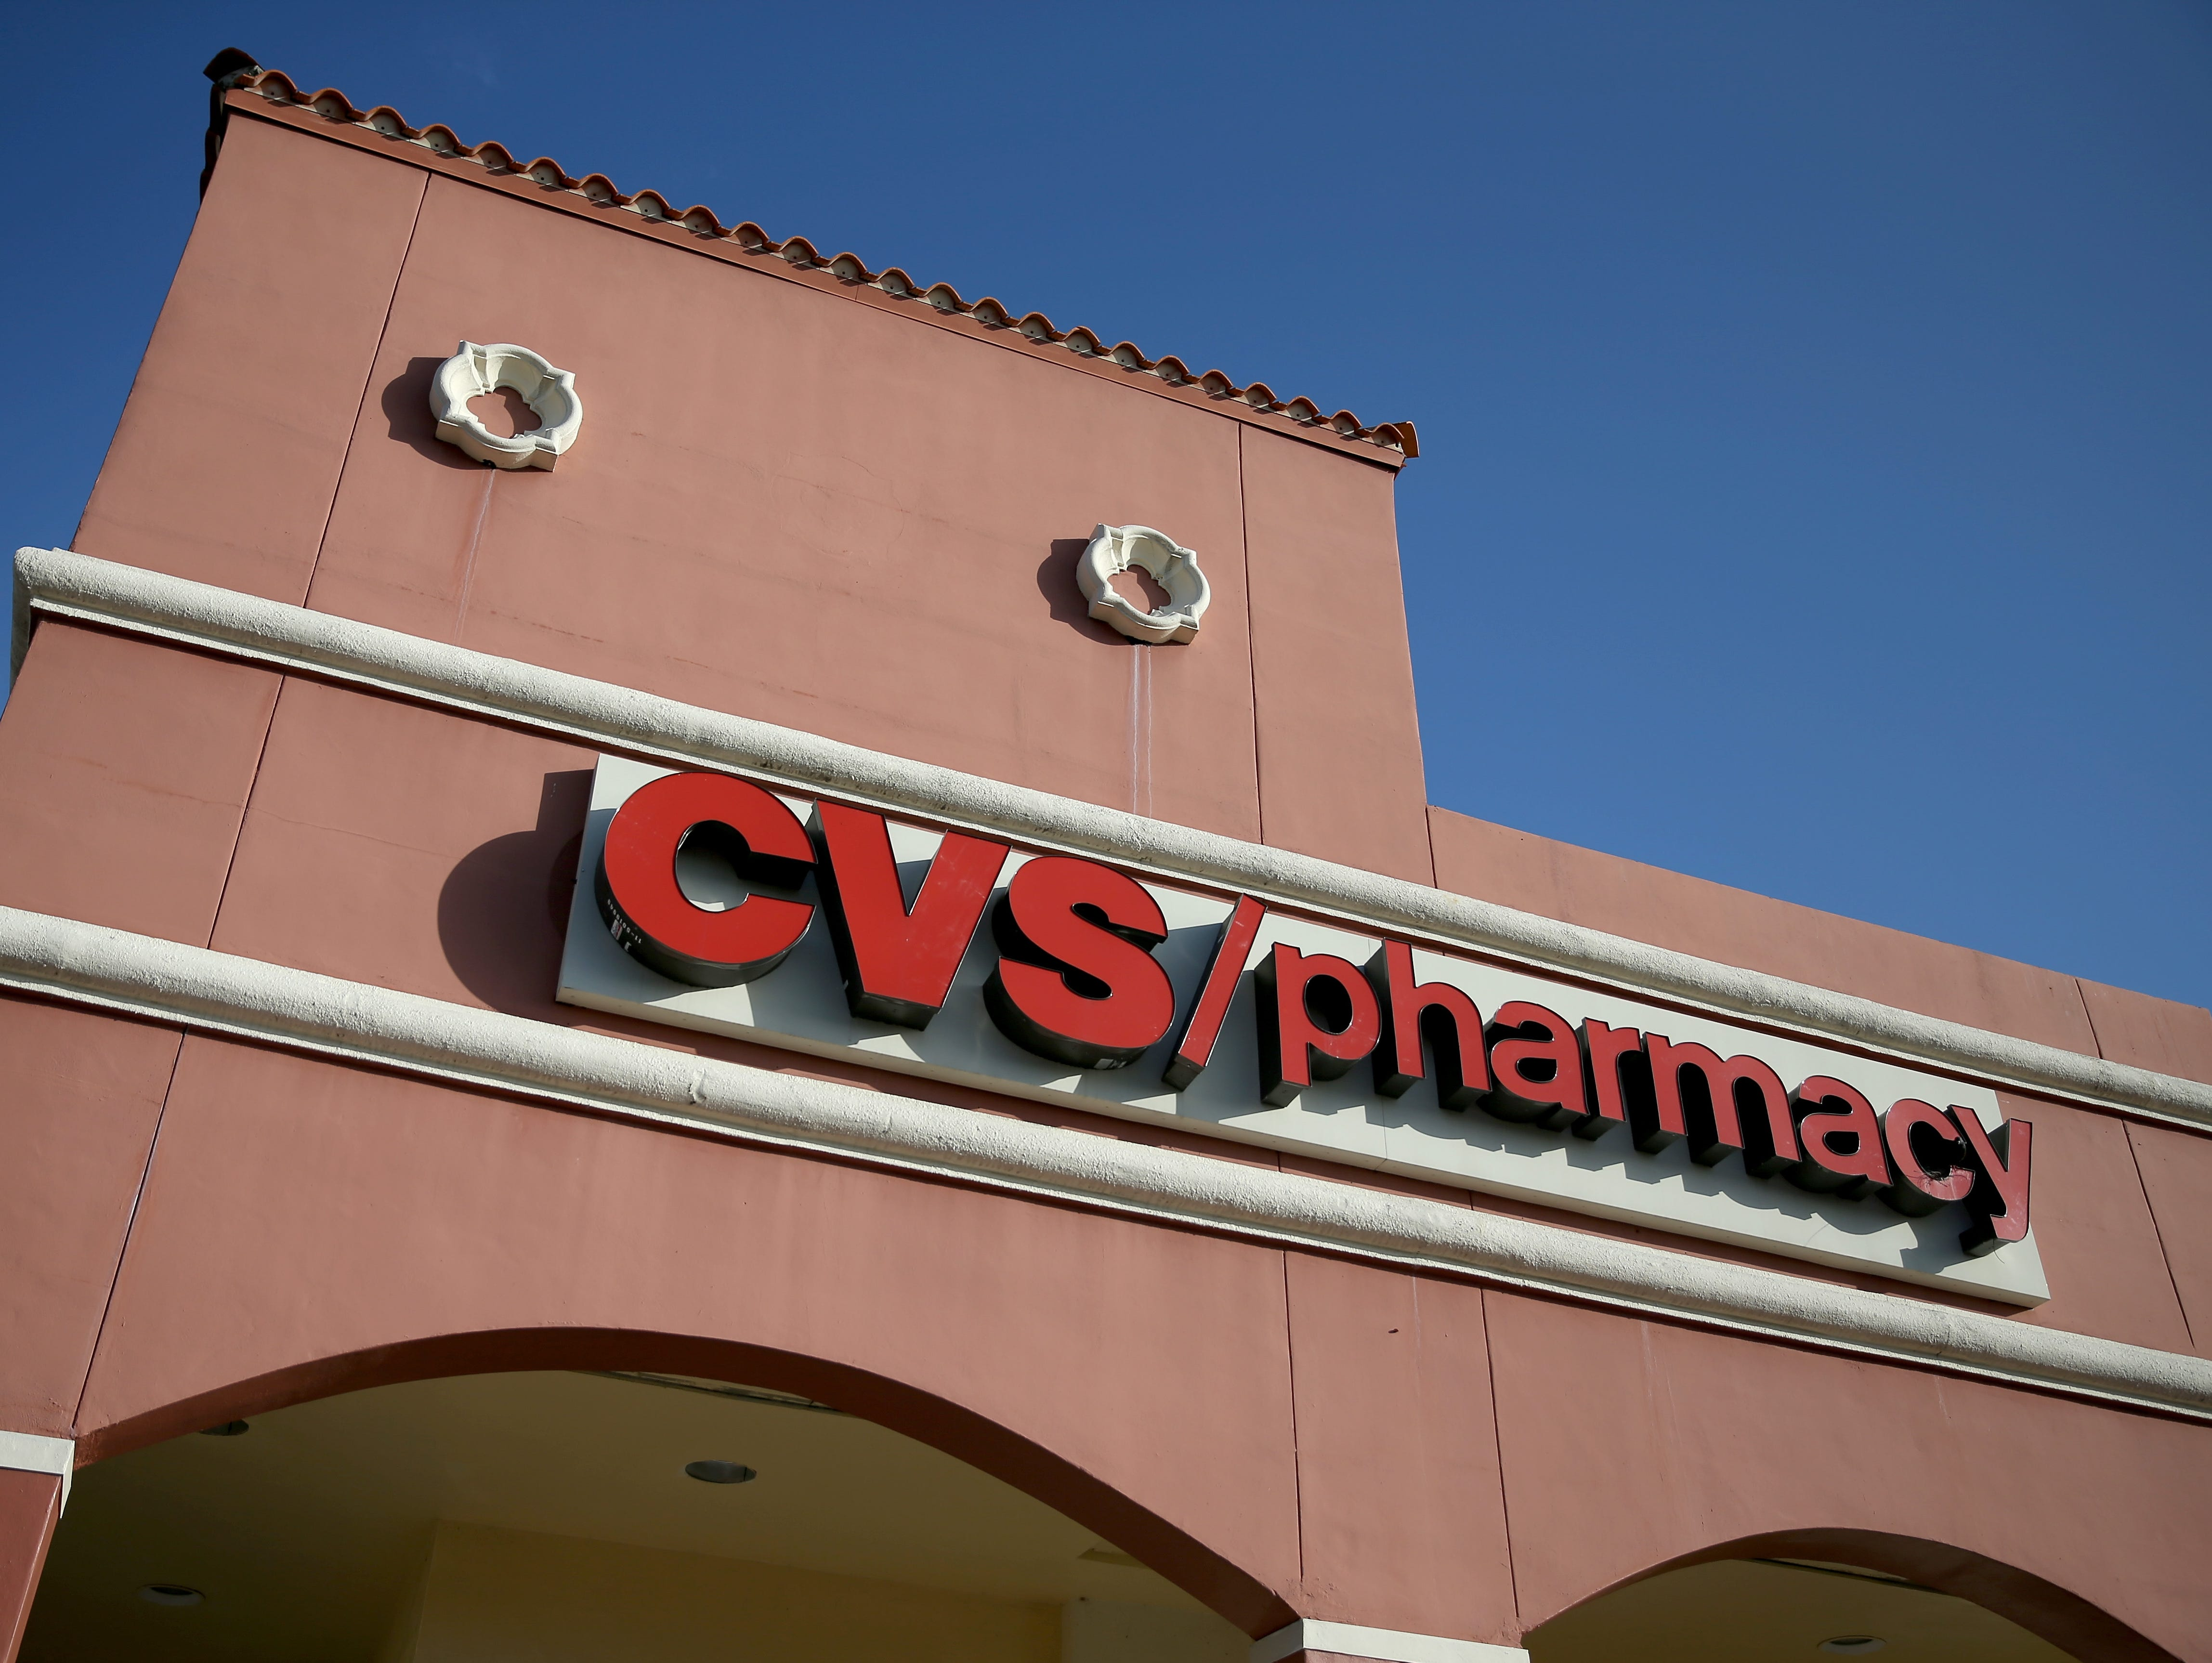 CVS announced in February it would no longer sell tobacco products.